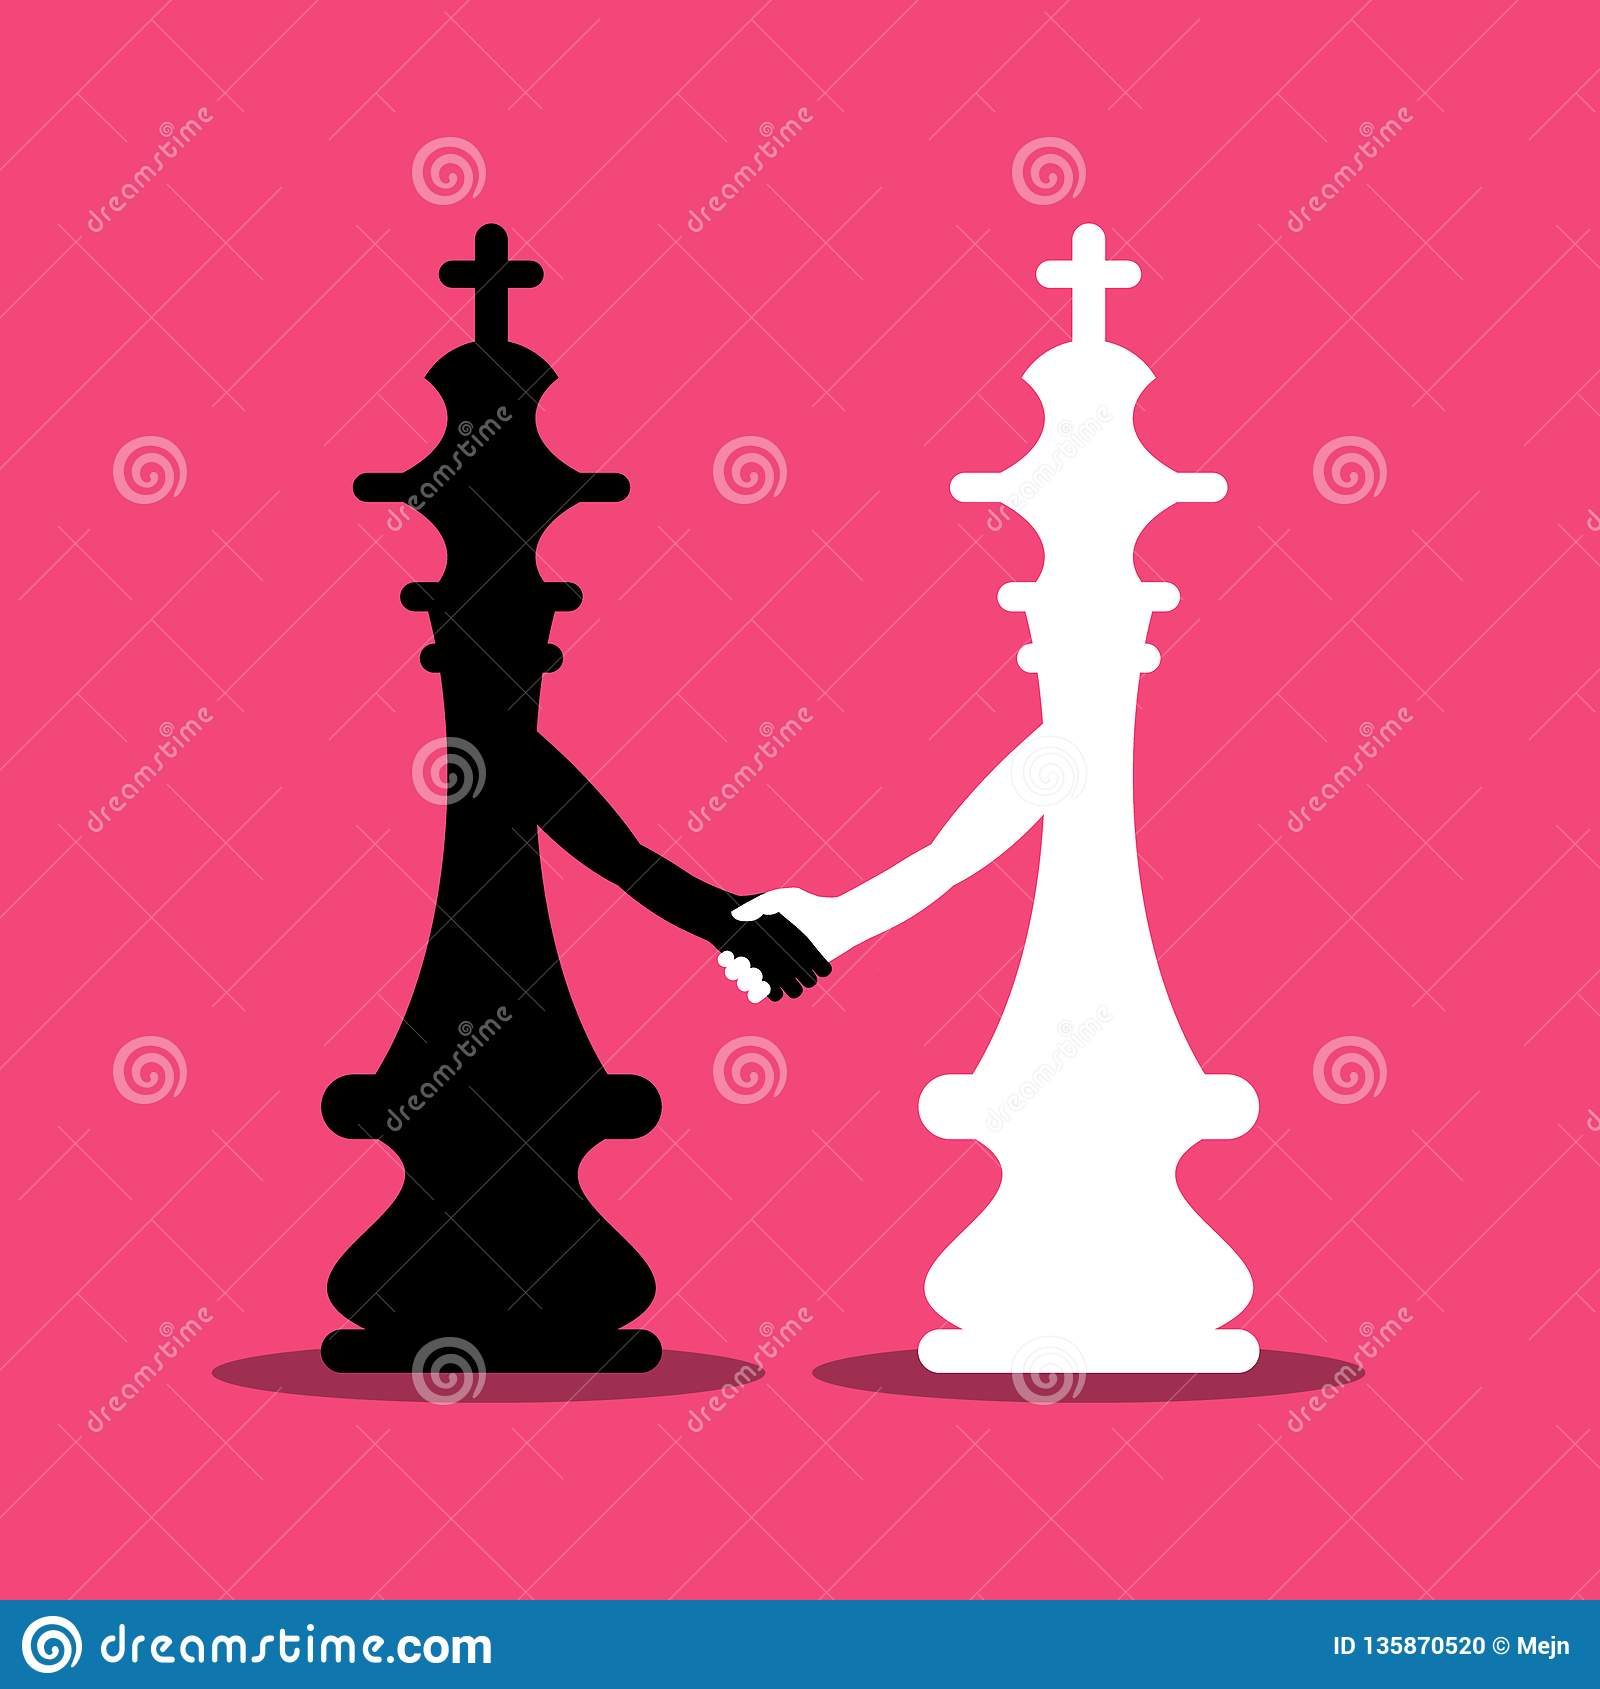 Black and White Chess Kings Holding Hands